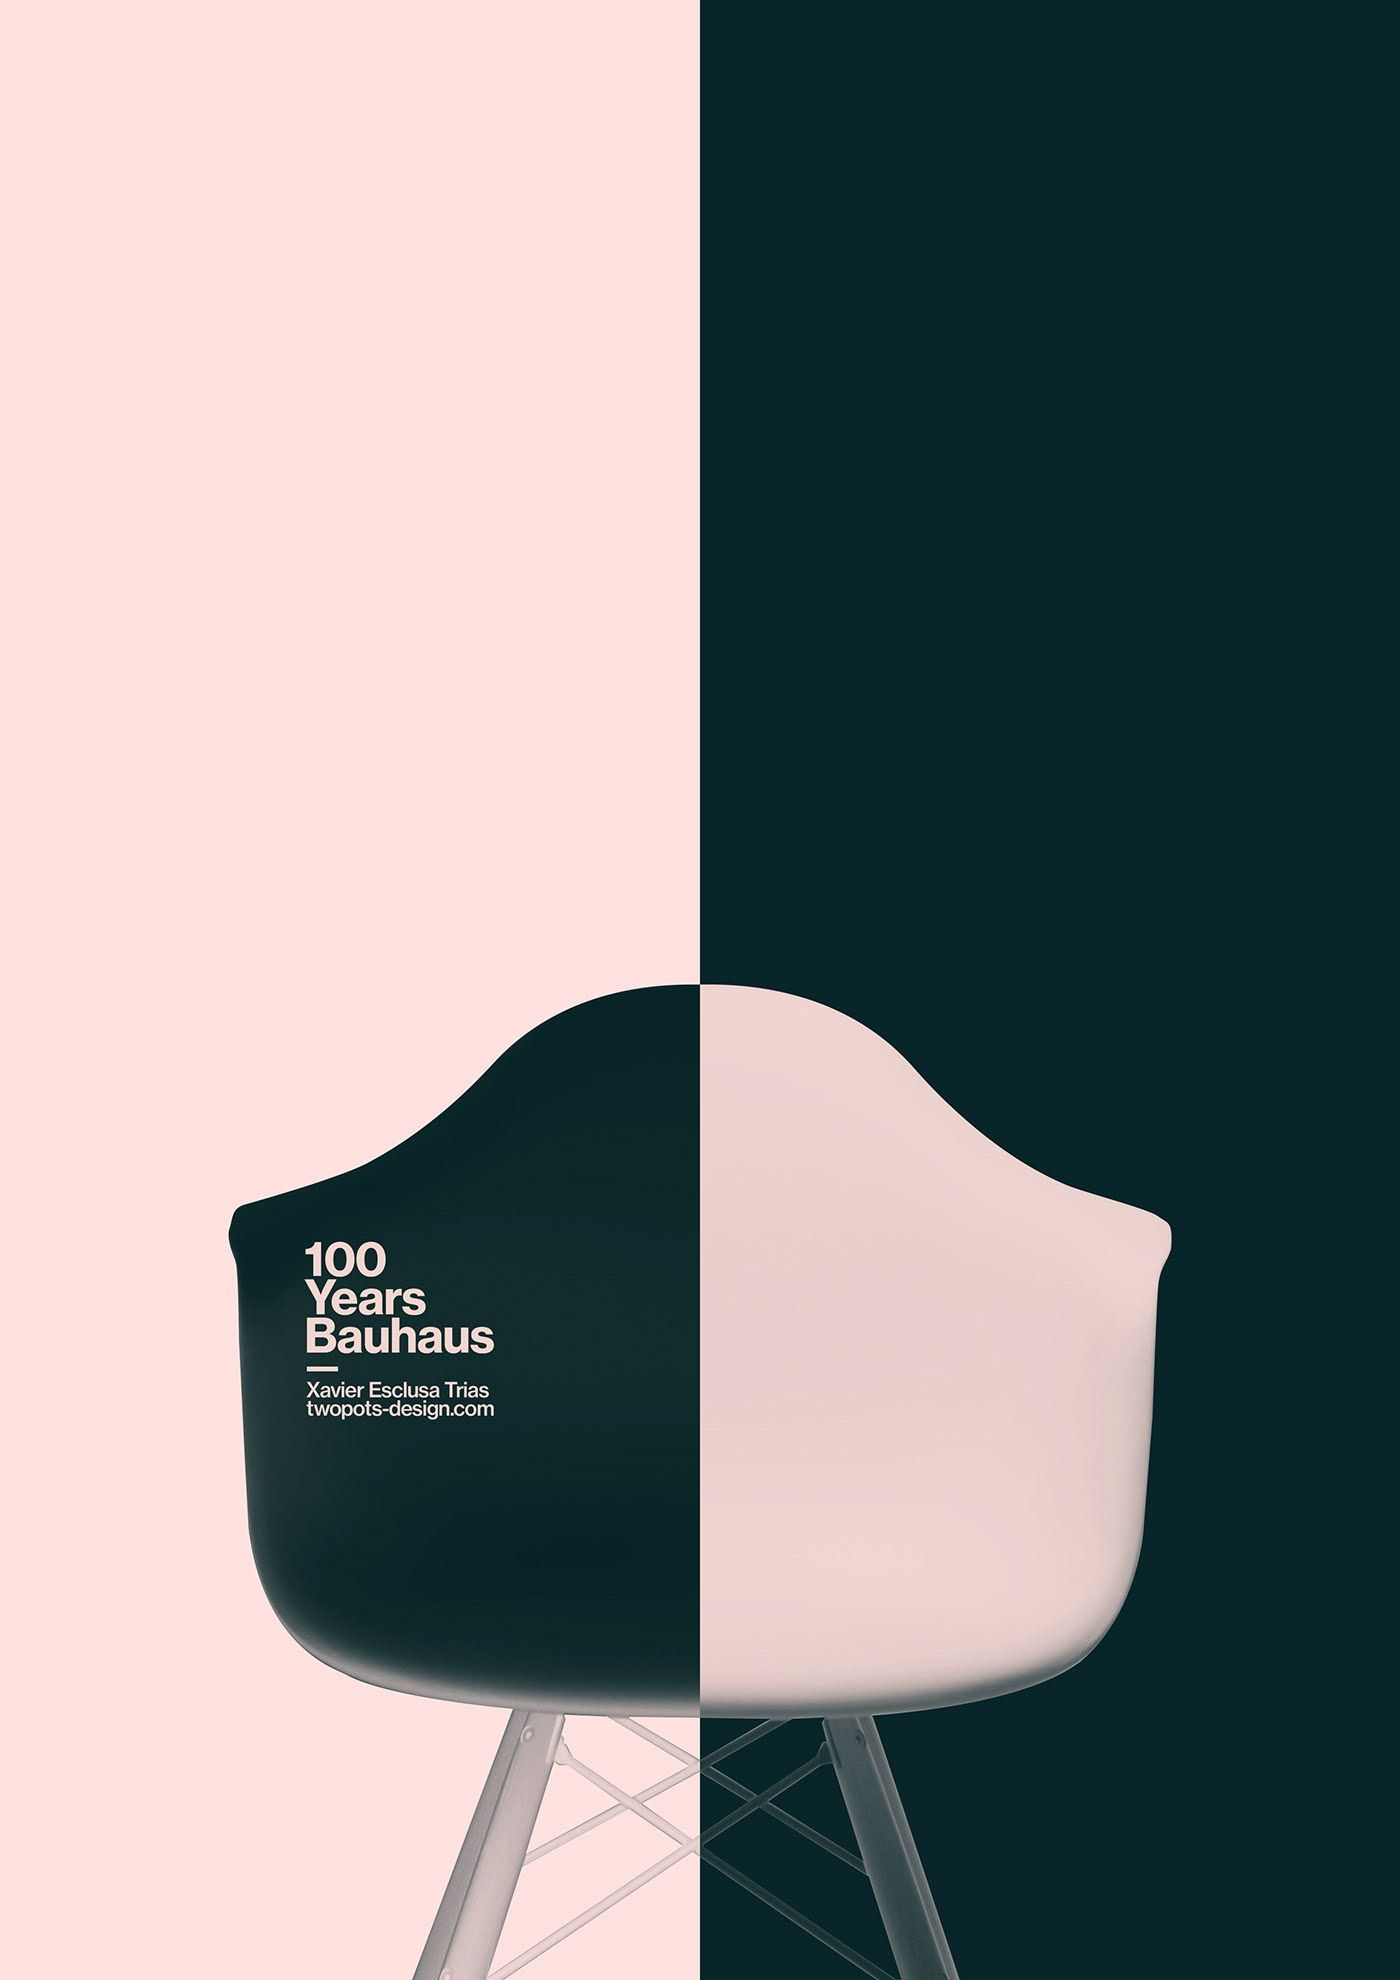 100 years bauhaus by xavier esclusa trias (With images